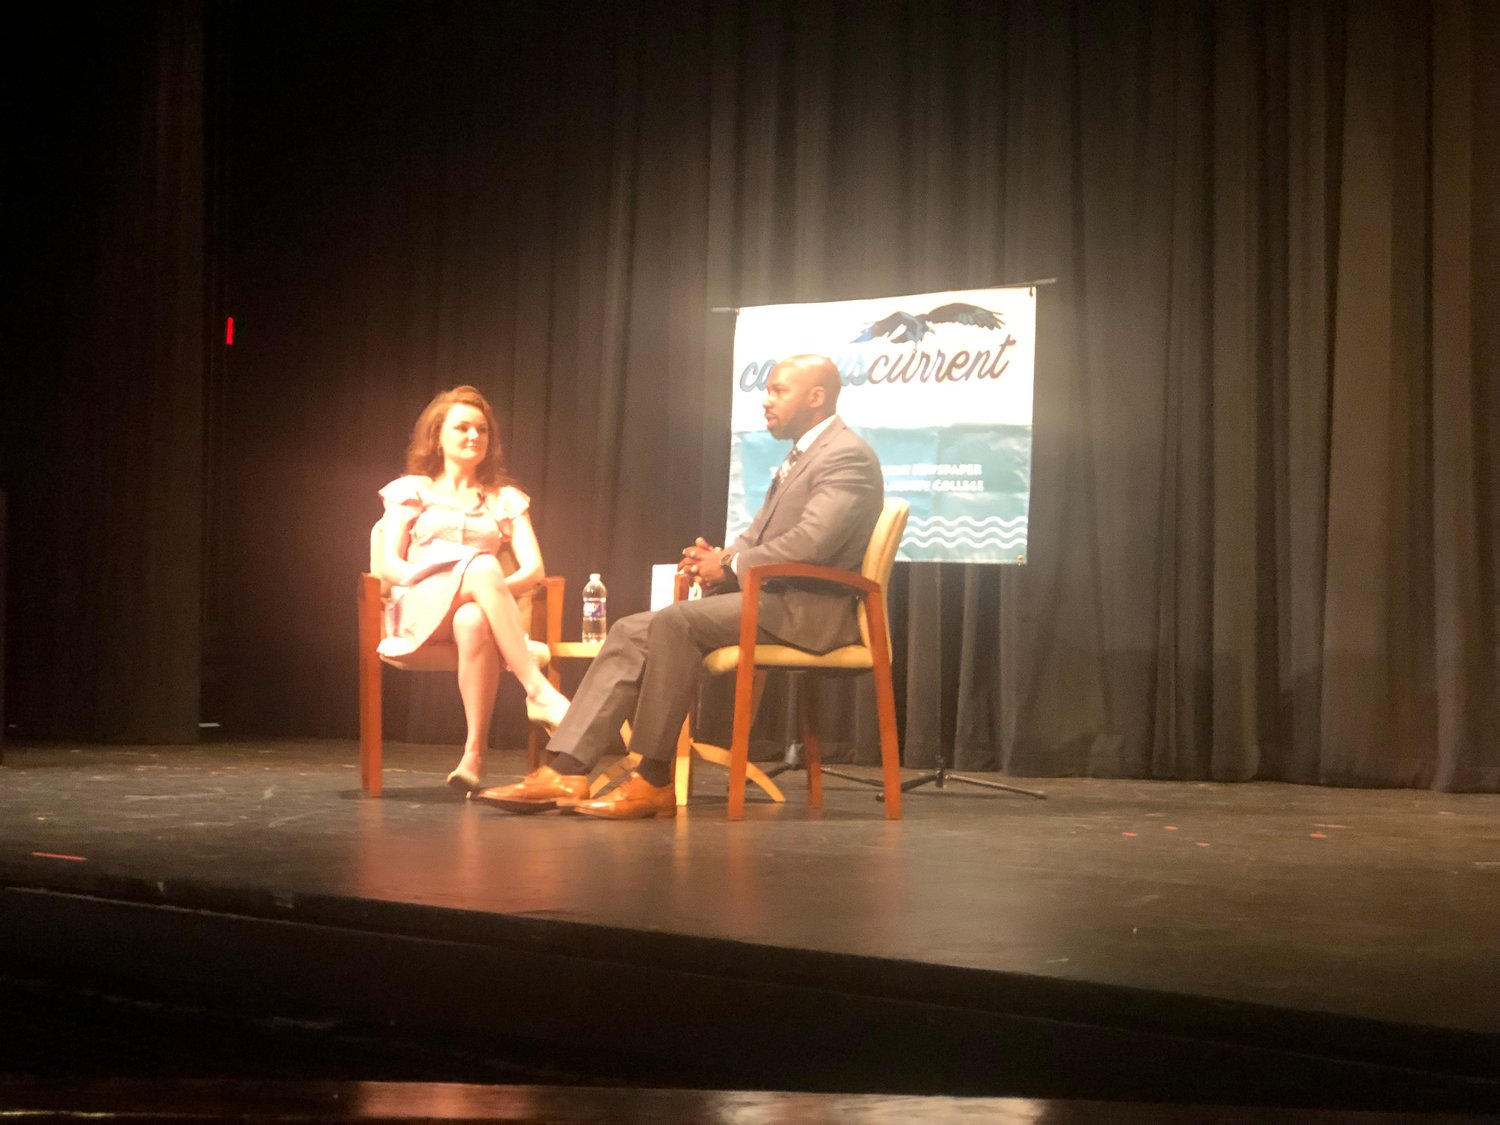 Chris Wilson was interviewed by AACC graduate Alexandra Radovic at the Robert E. Kauffman Theater on September 30.